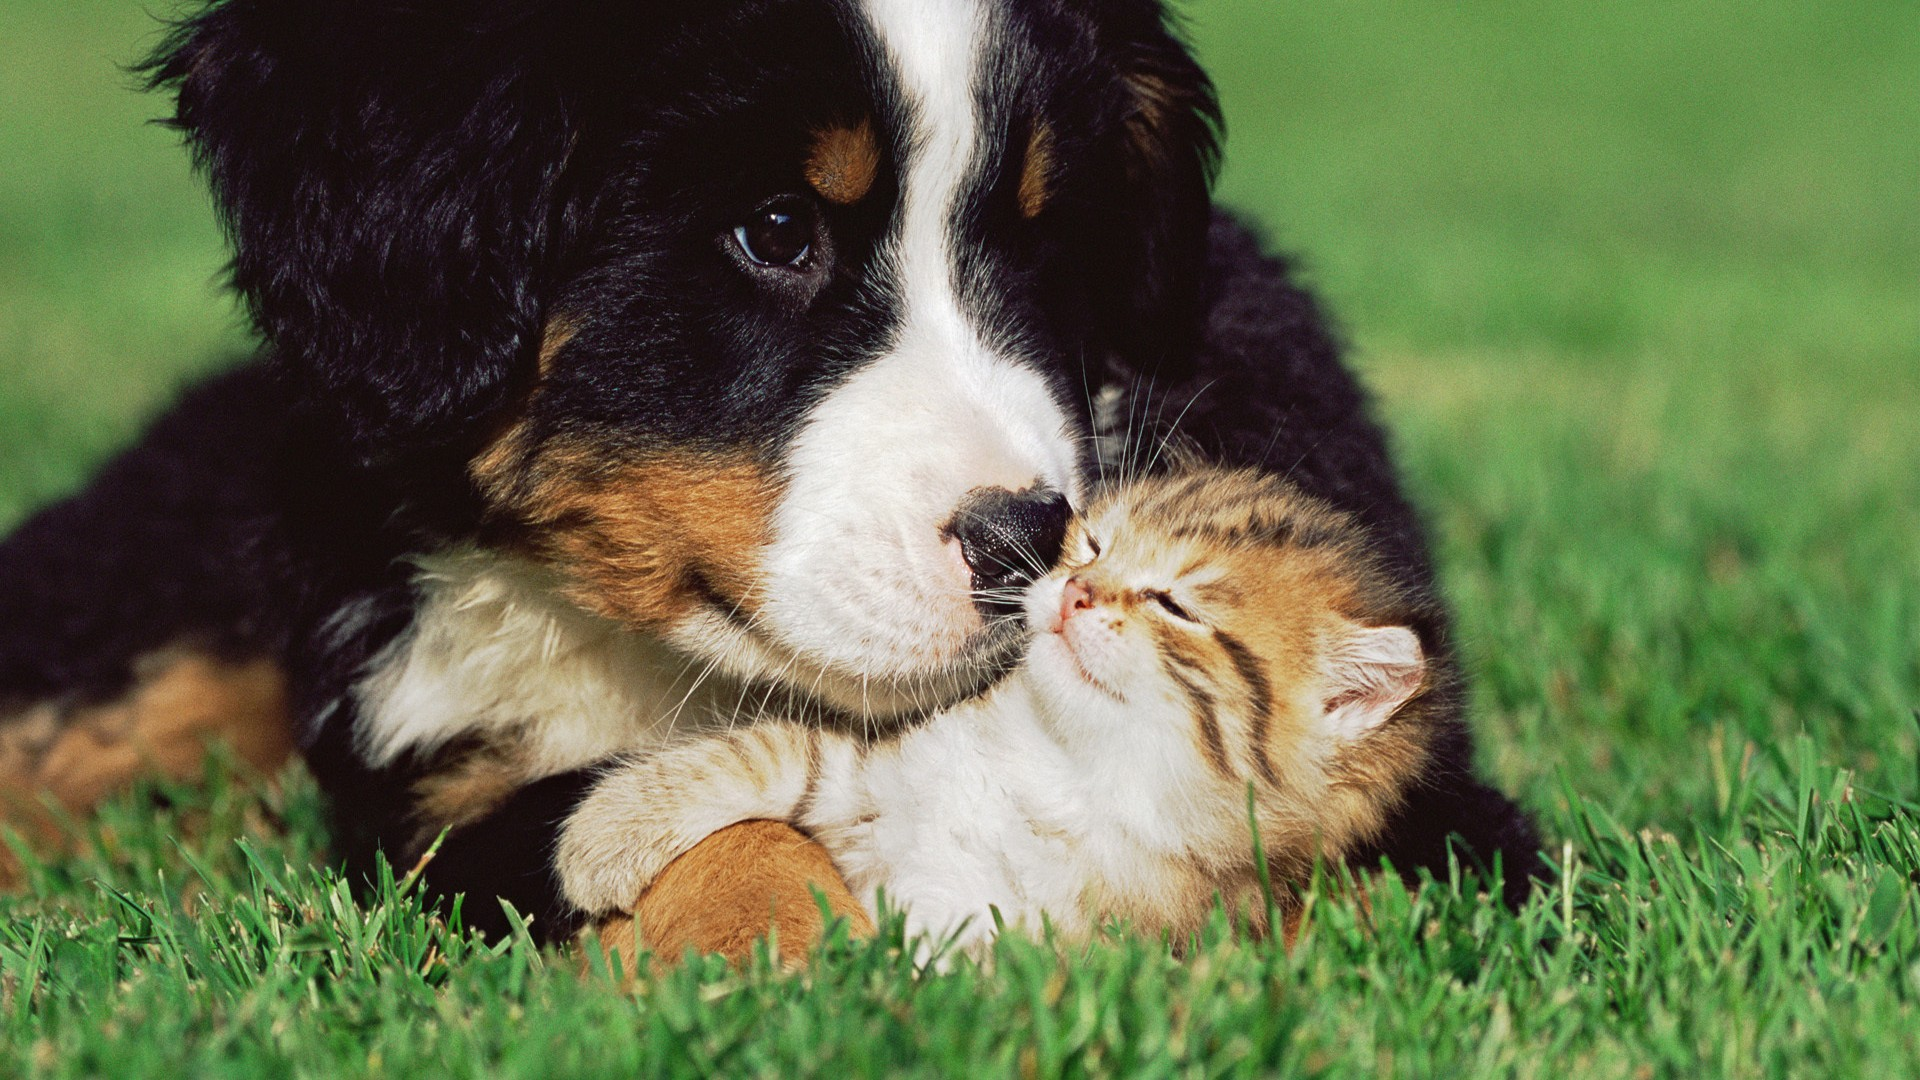 cat And Dog Love Wallpaper : cats Dogs Kittens Grass Animals puppy cute love wallpaper 1920x1080 52988 WallpaperUP